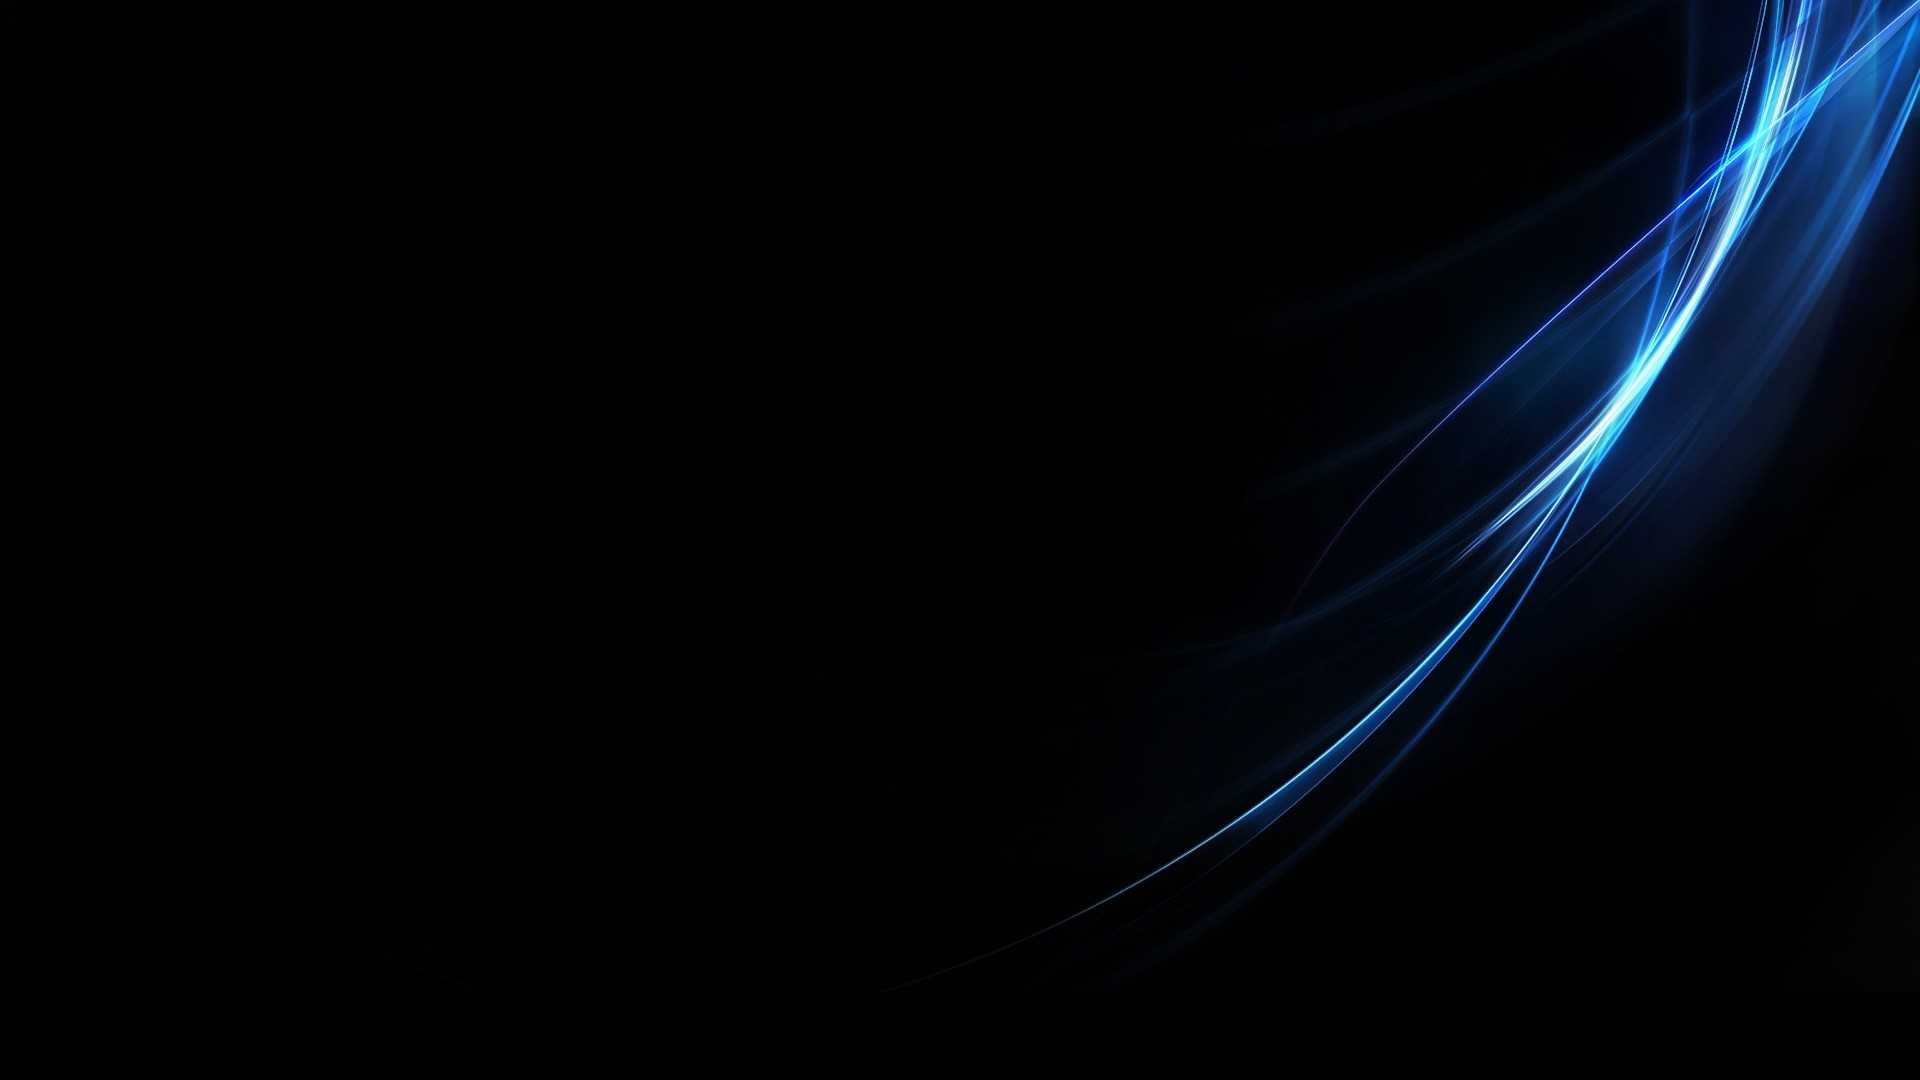 abstract blue black minimalistic wallpaper background